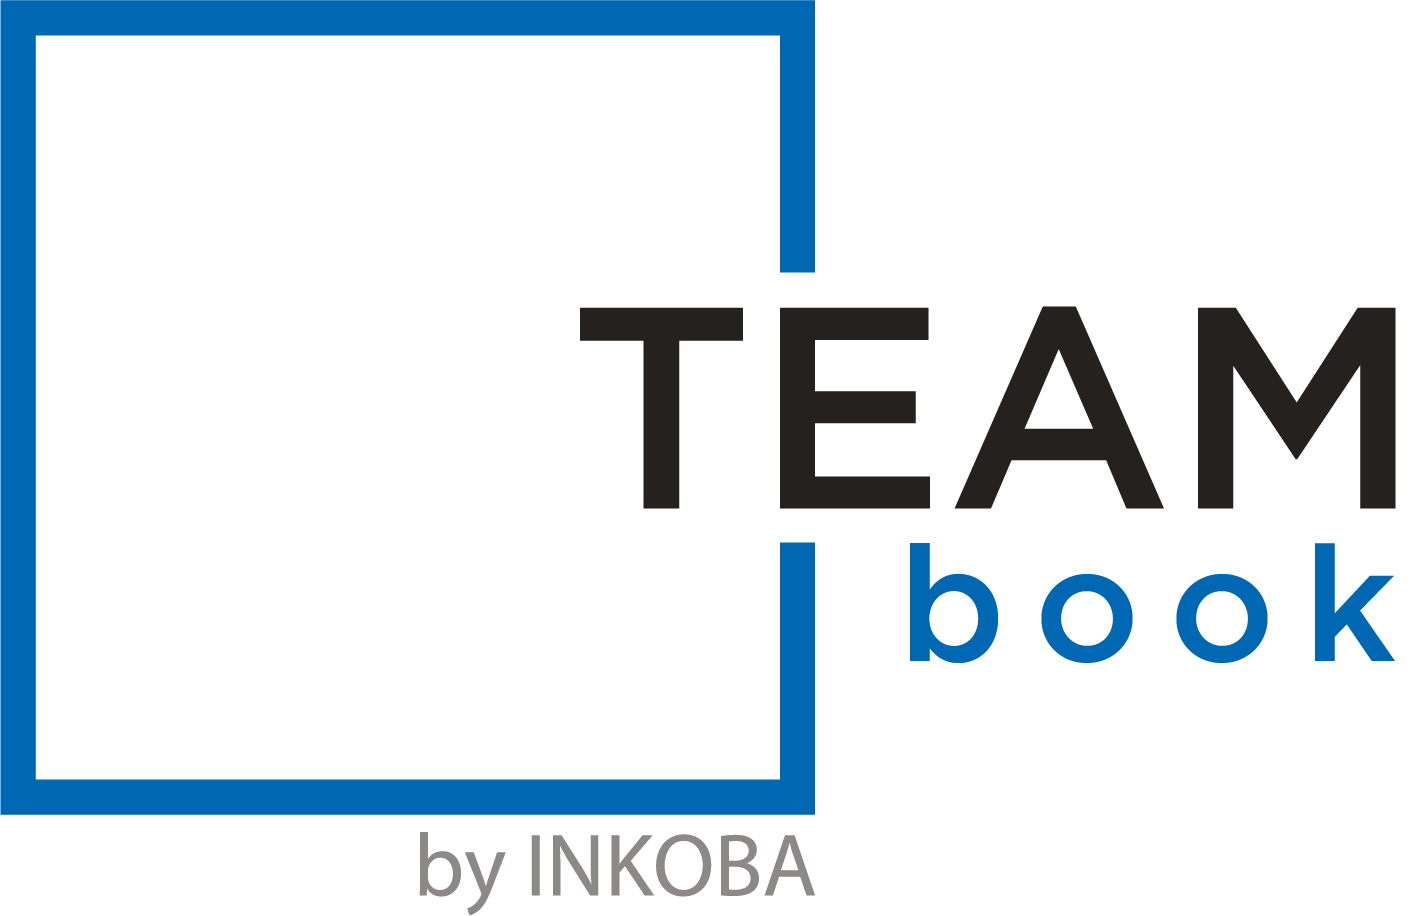 Teambook by Inkoba